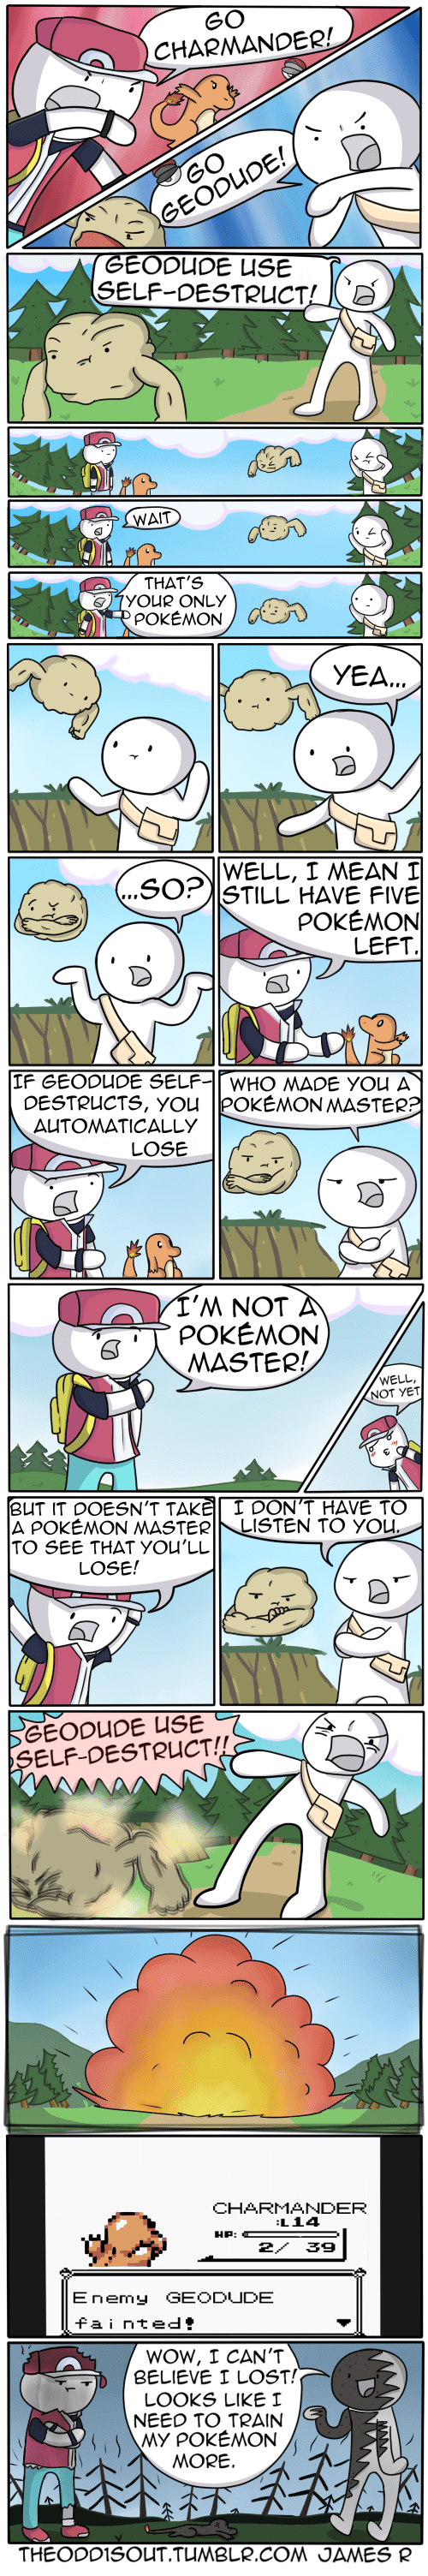 Pokémon red comics selfdestruct web comics - 7679709184